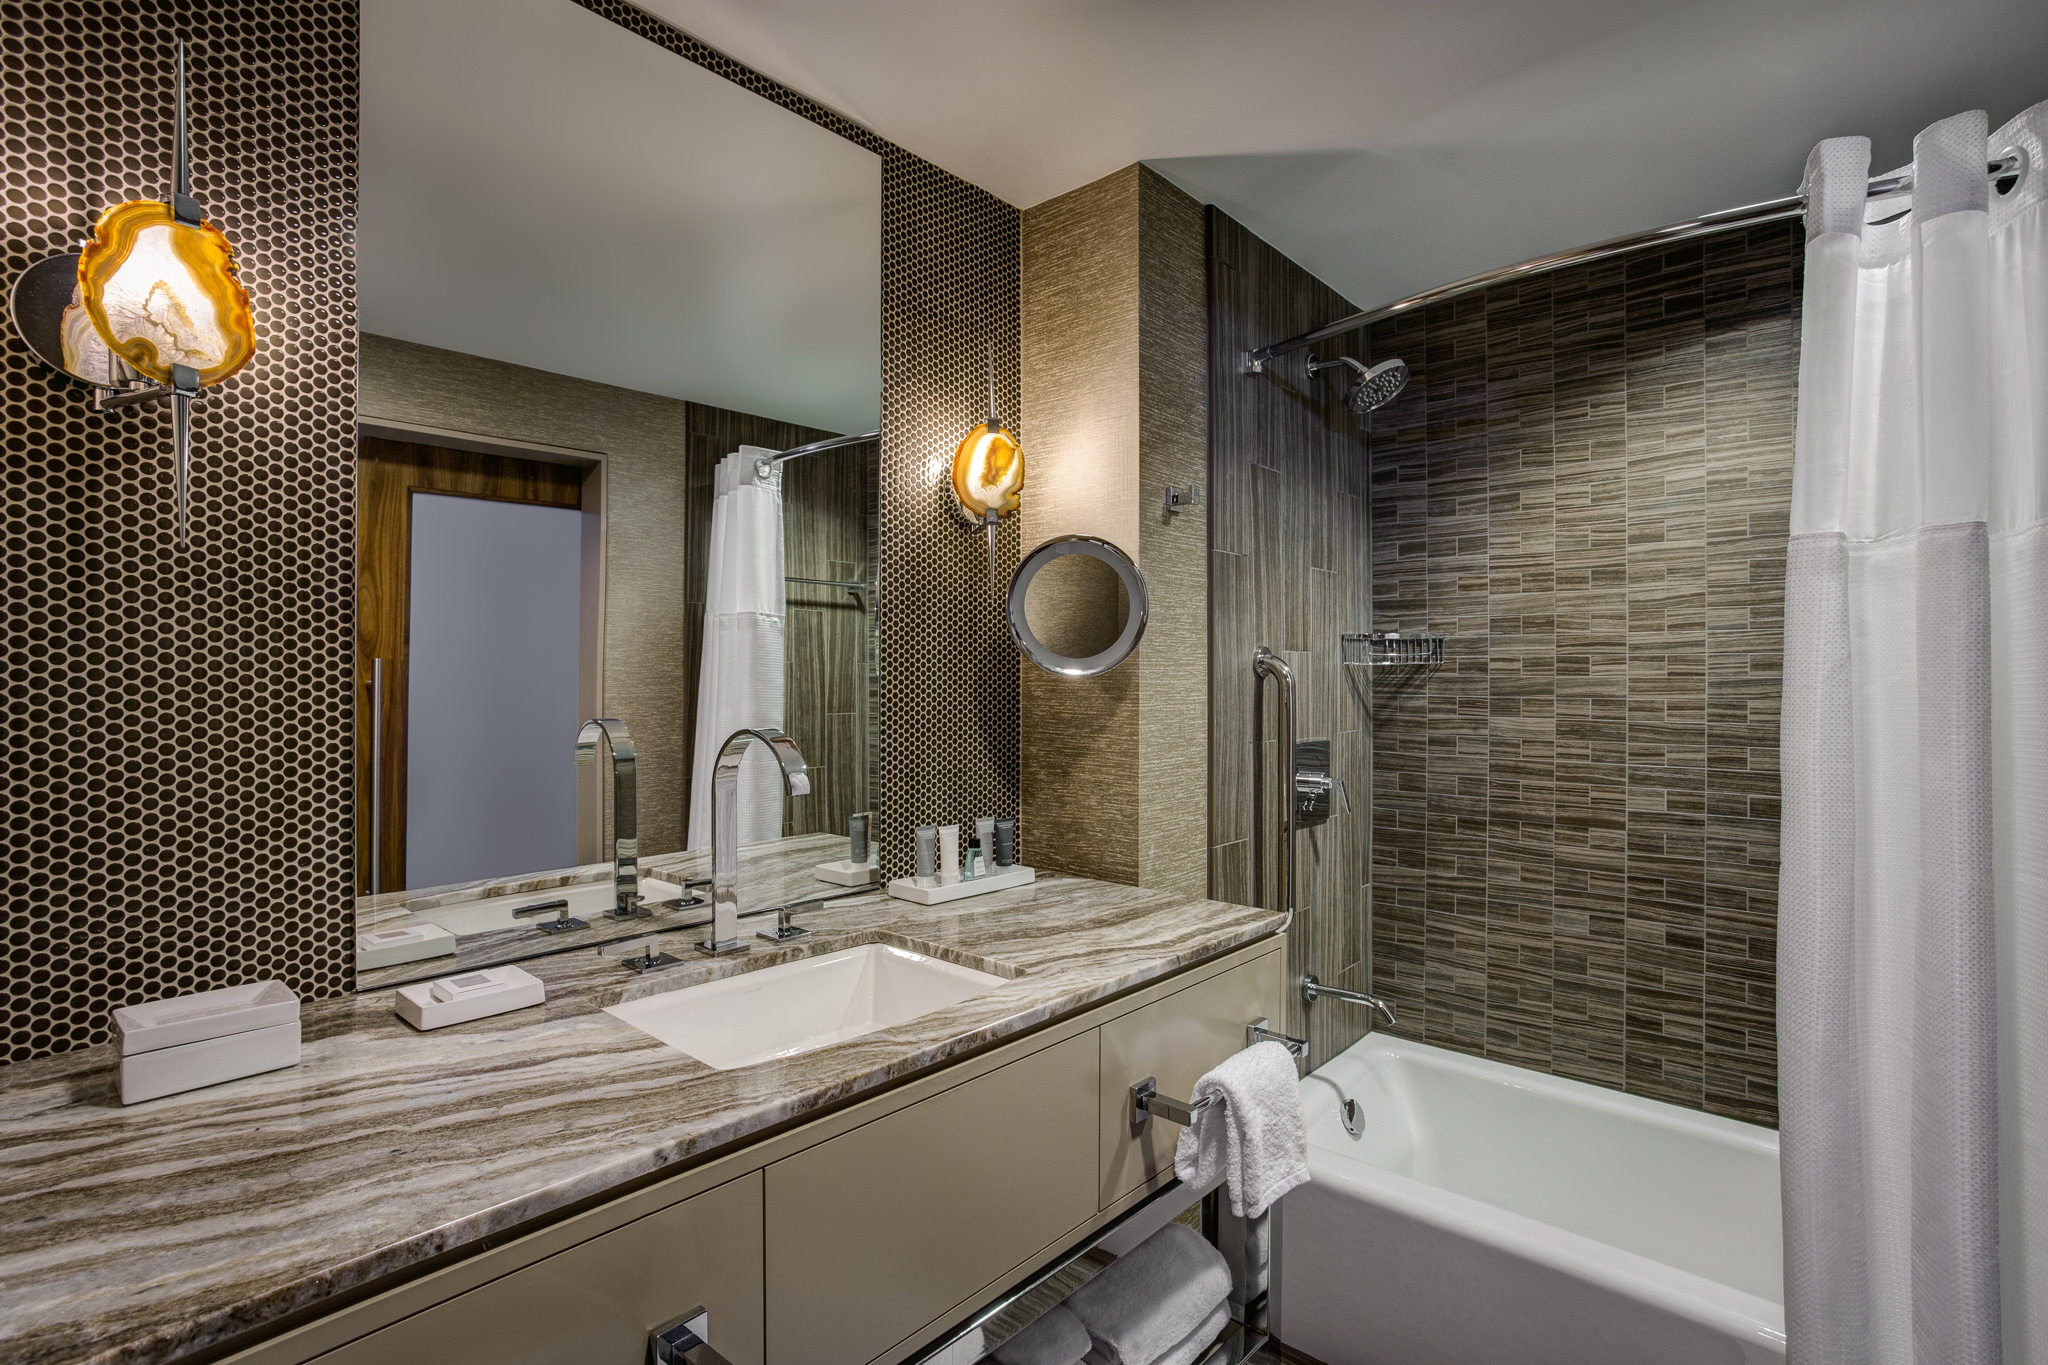 JW Marriott Austin image 6